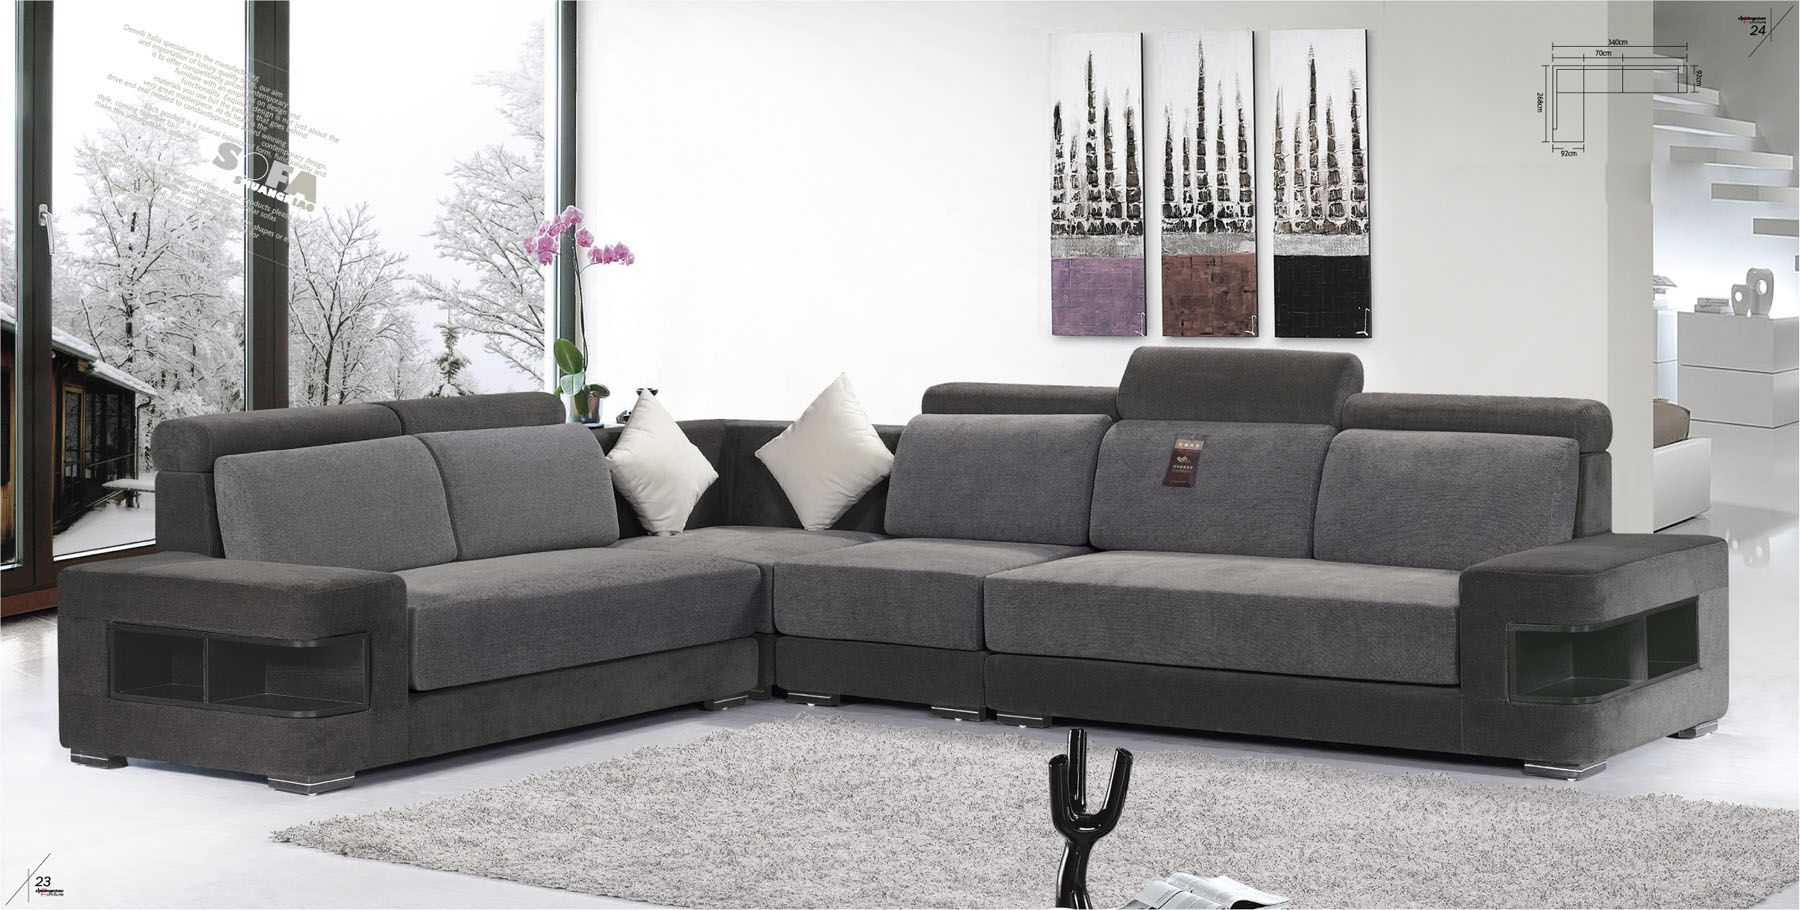 buy living room sofa modern l shaped sofa and living room l shaped sofa sets 11888 | 678a36793f642c0064c020ea1fc8faaa